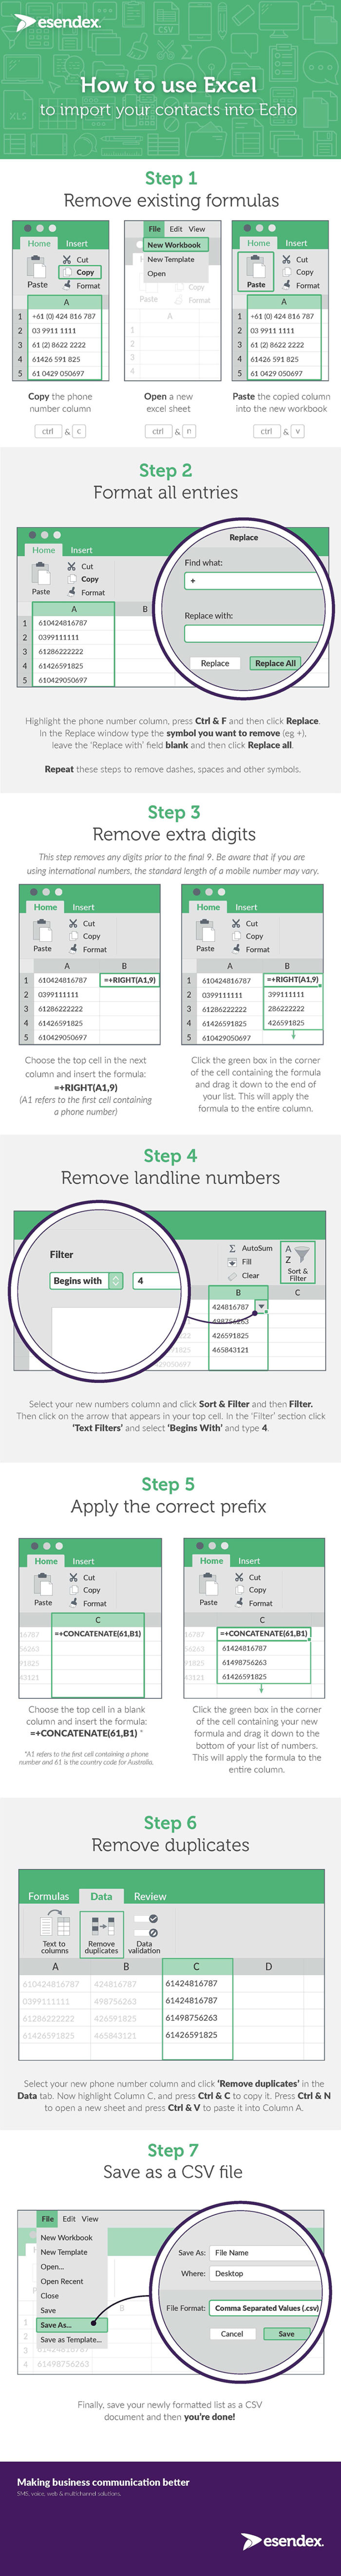 how to clean and reformat telephone numbers in excel infographic